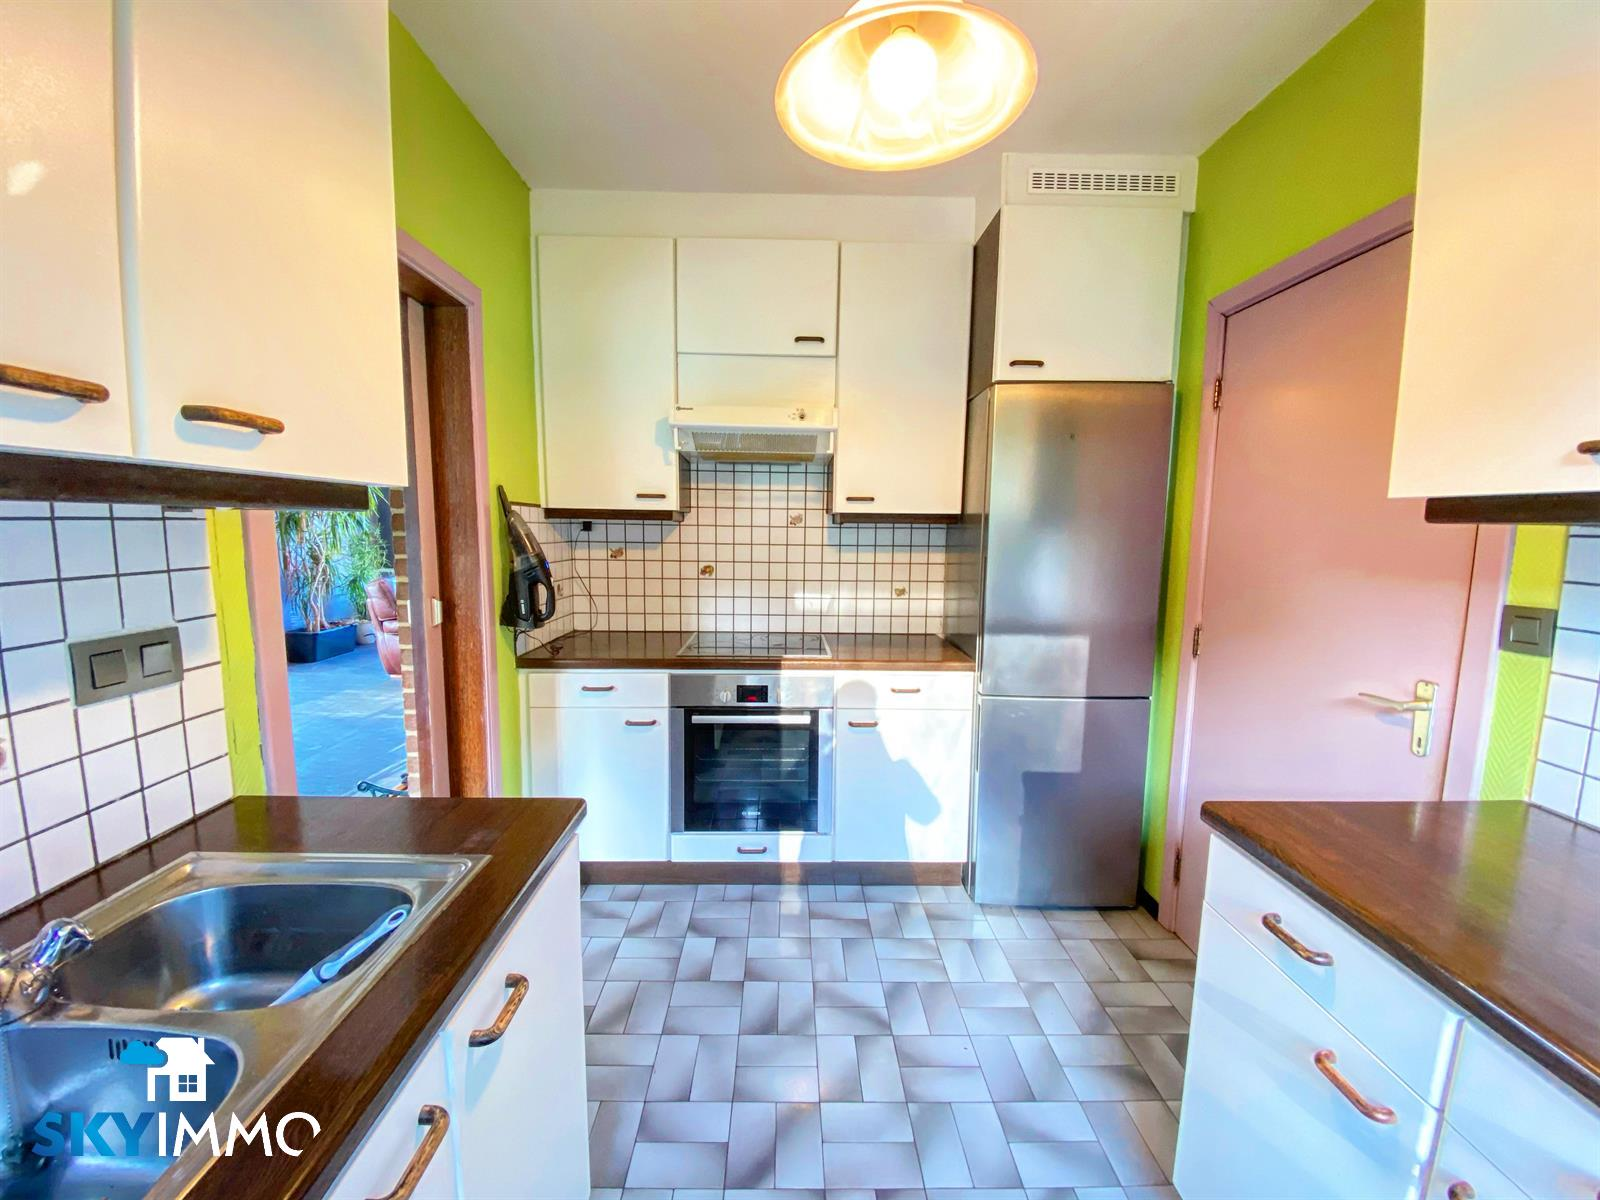 Bungalow - Flemalle - #4363206-11